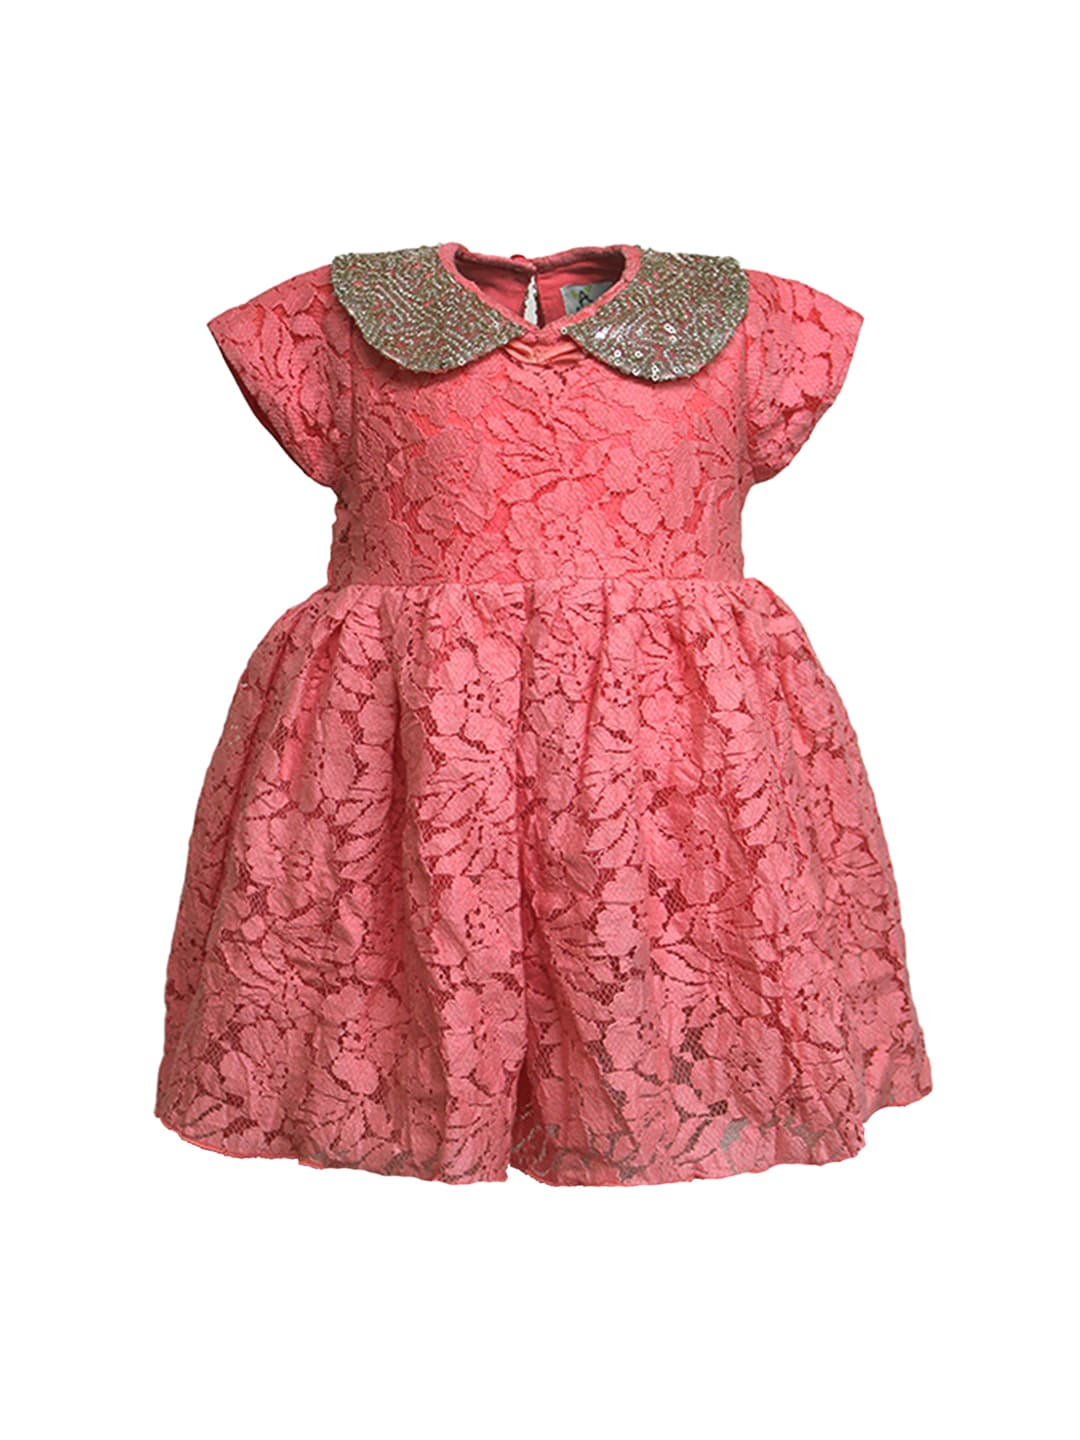 A Little Fable Girls Coral Pink Lace Fit & Flare Dress